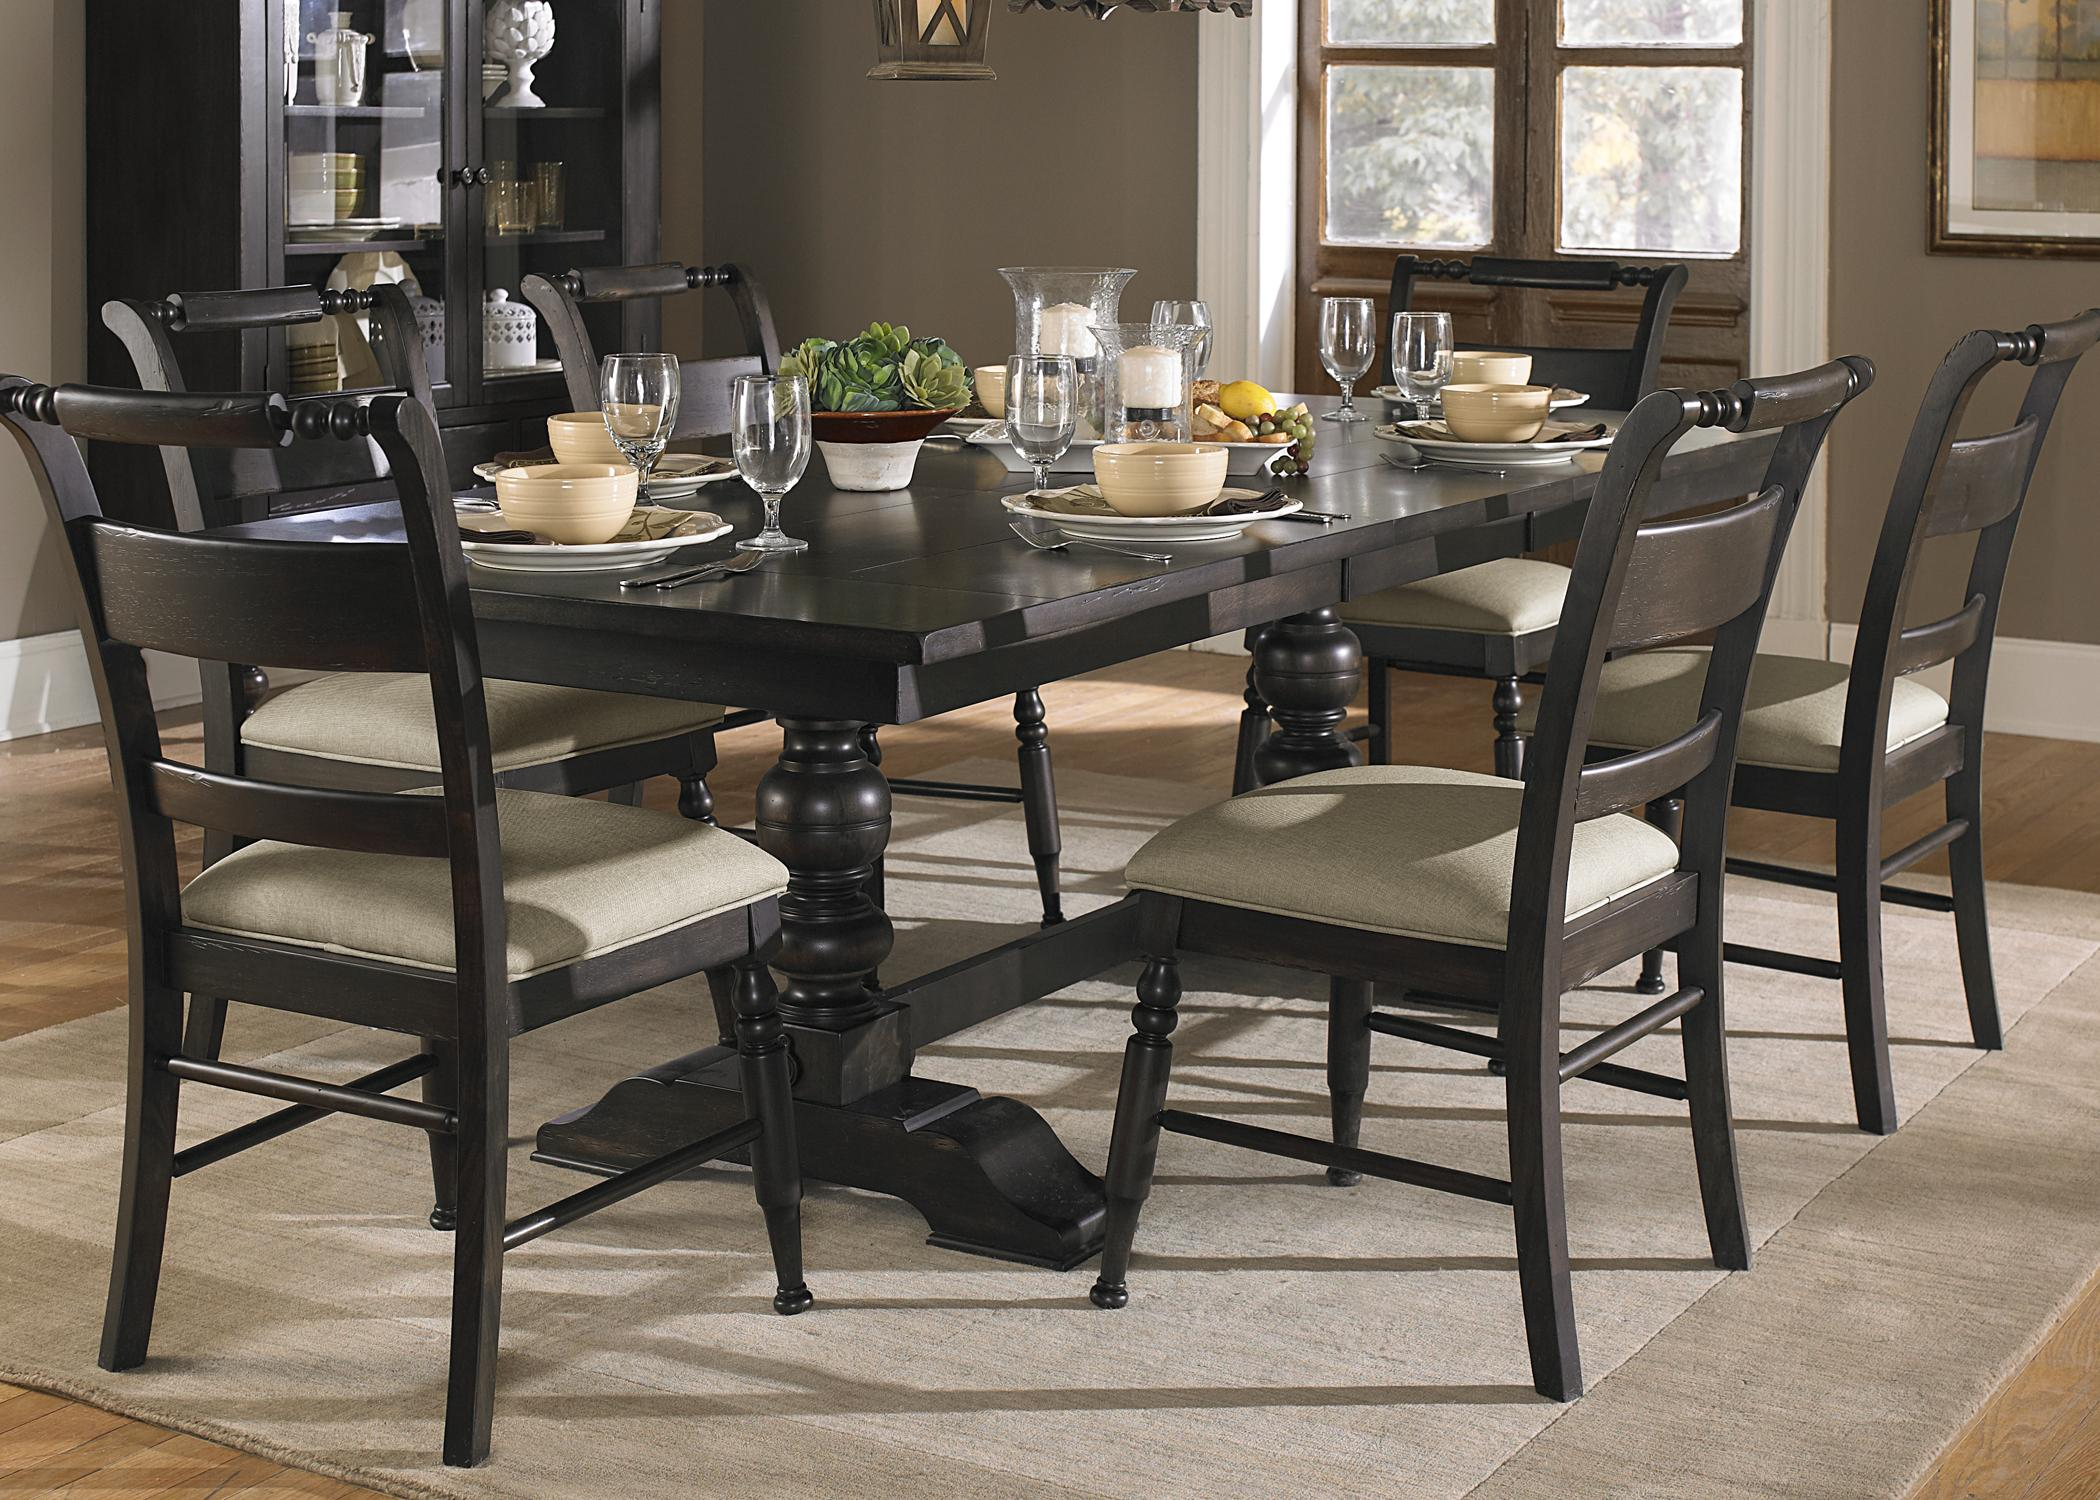 Genial 7 Piece Trestle Dining Room Table Set